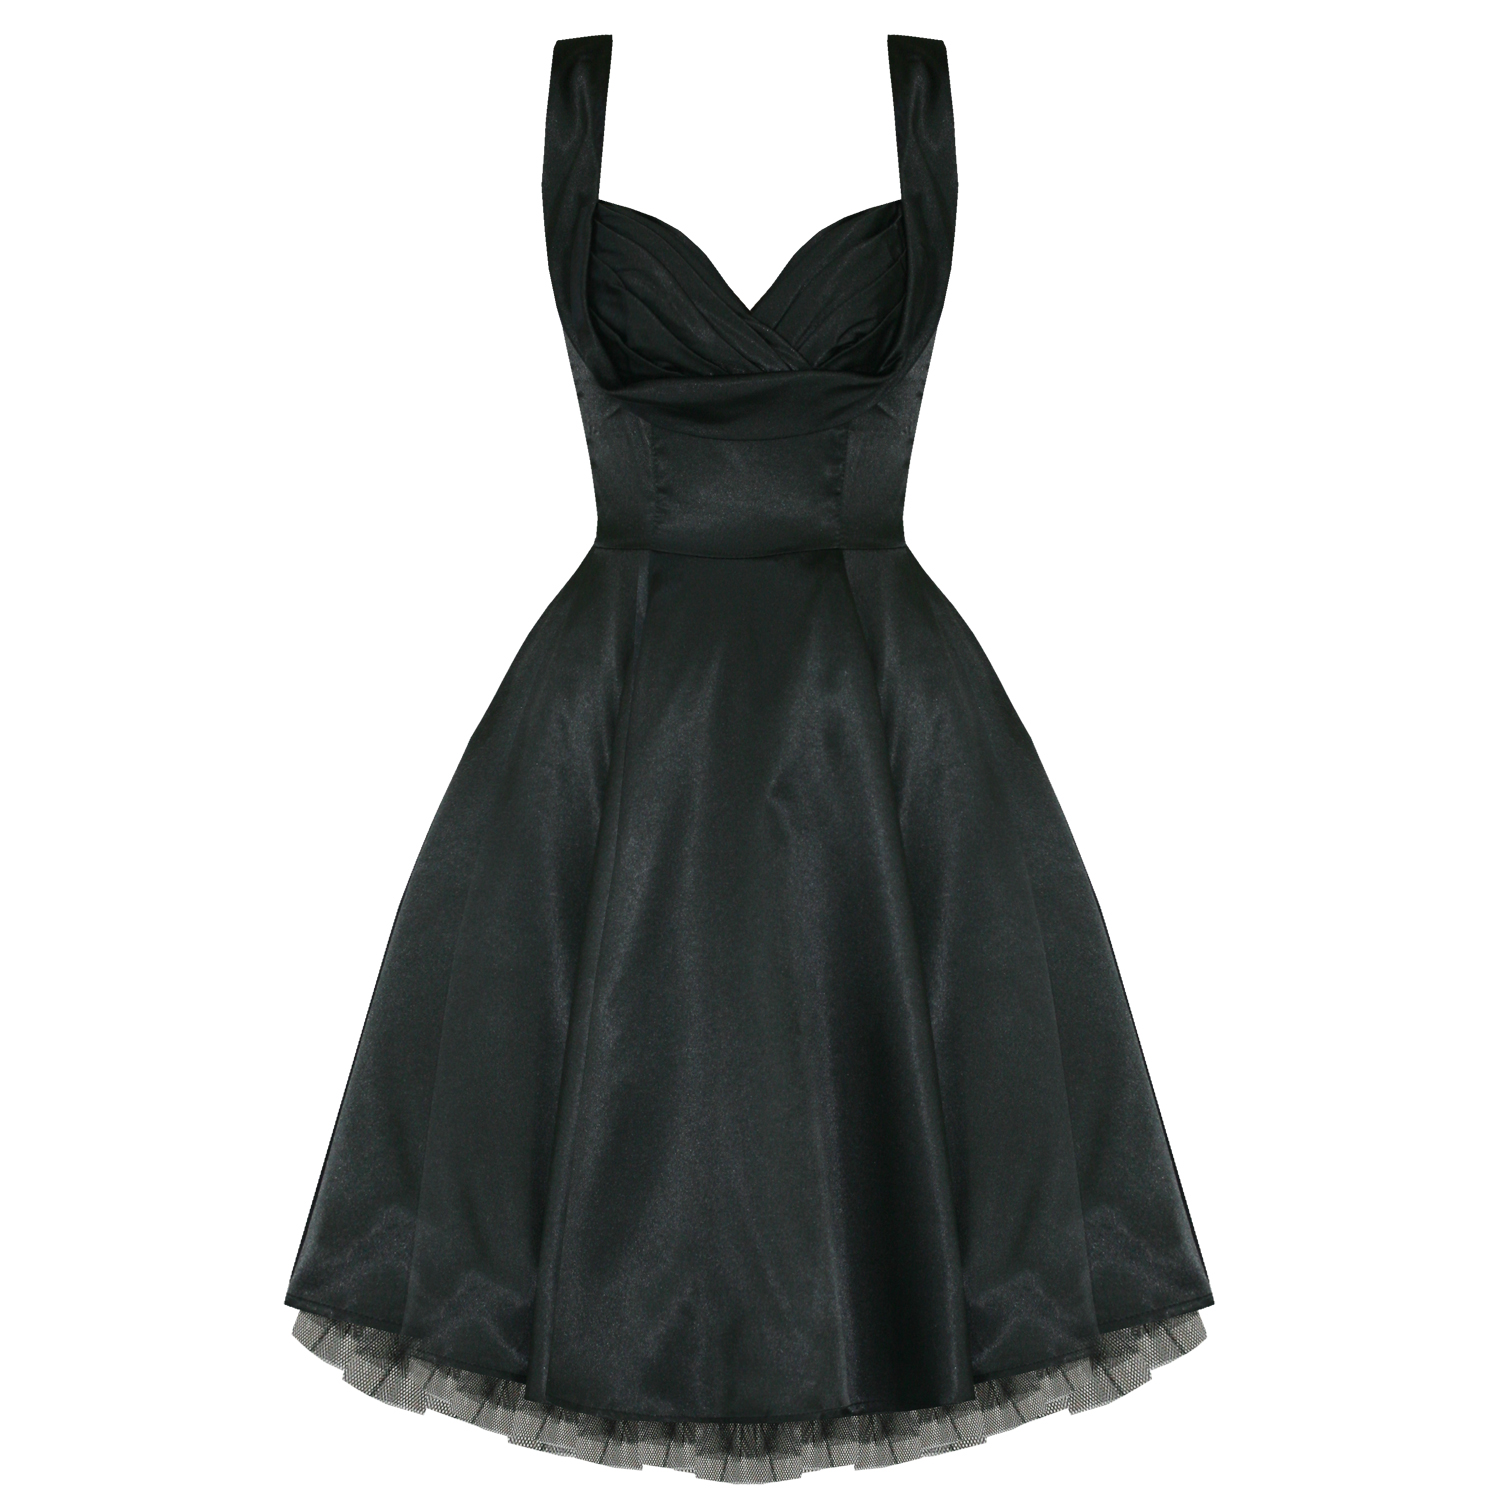 Ladies New Black Satin Vintage 50s Retro Pinup Party Prom Swing ...